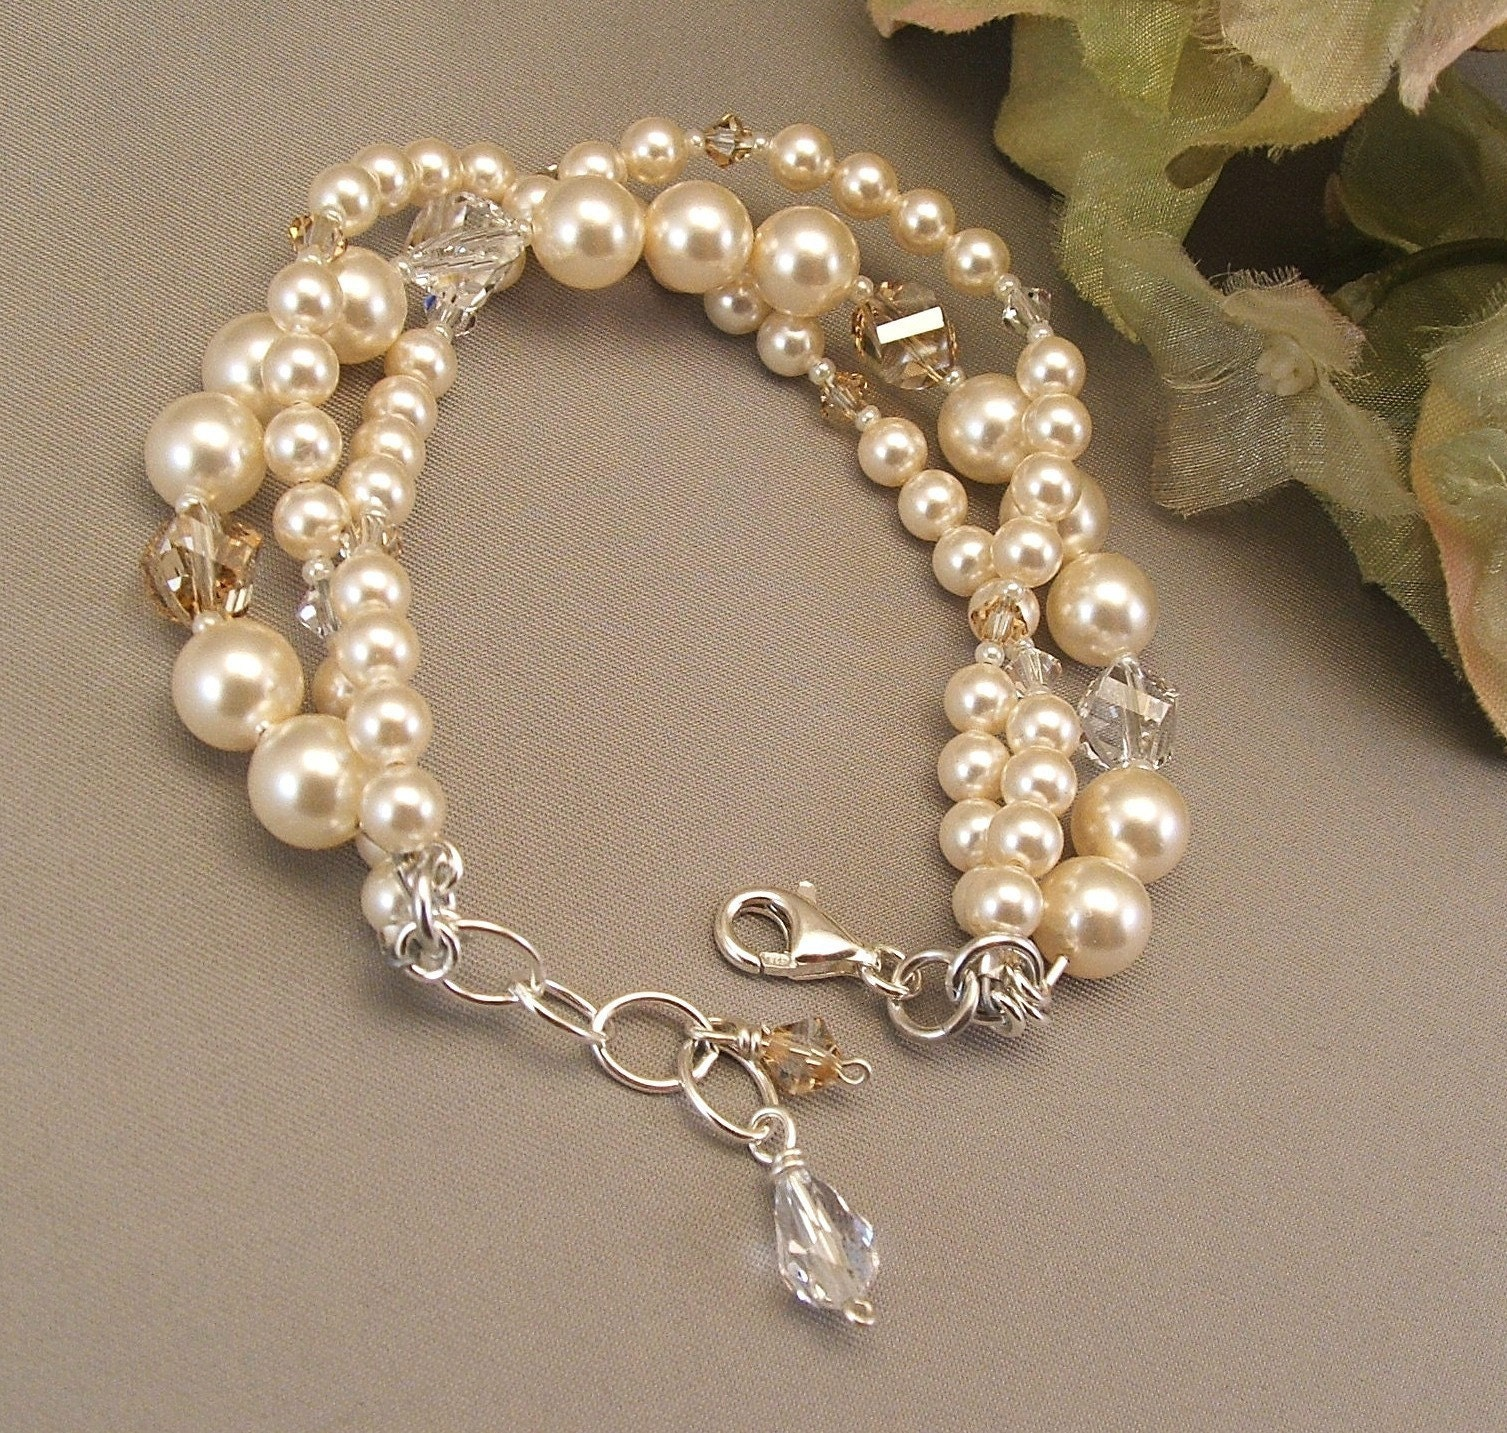 IVORY WEDDING GOWN BRACELET  IVORY SWAROVSKI PEARLS by Handwired from etsy.com